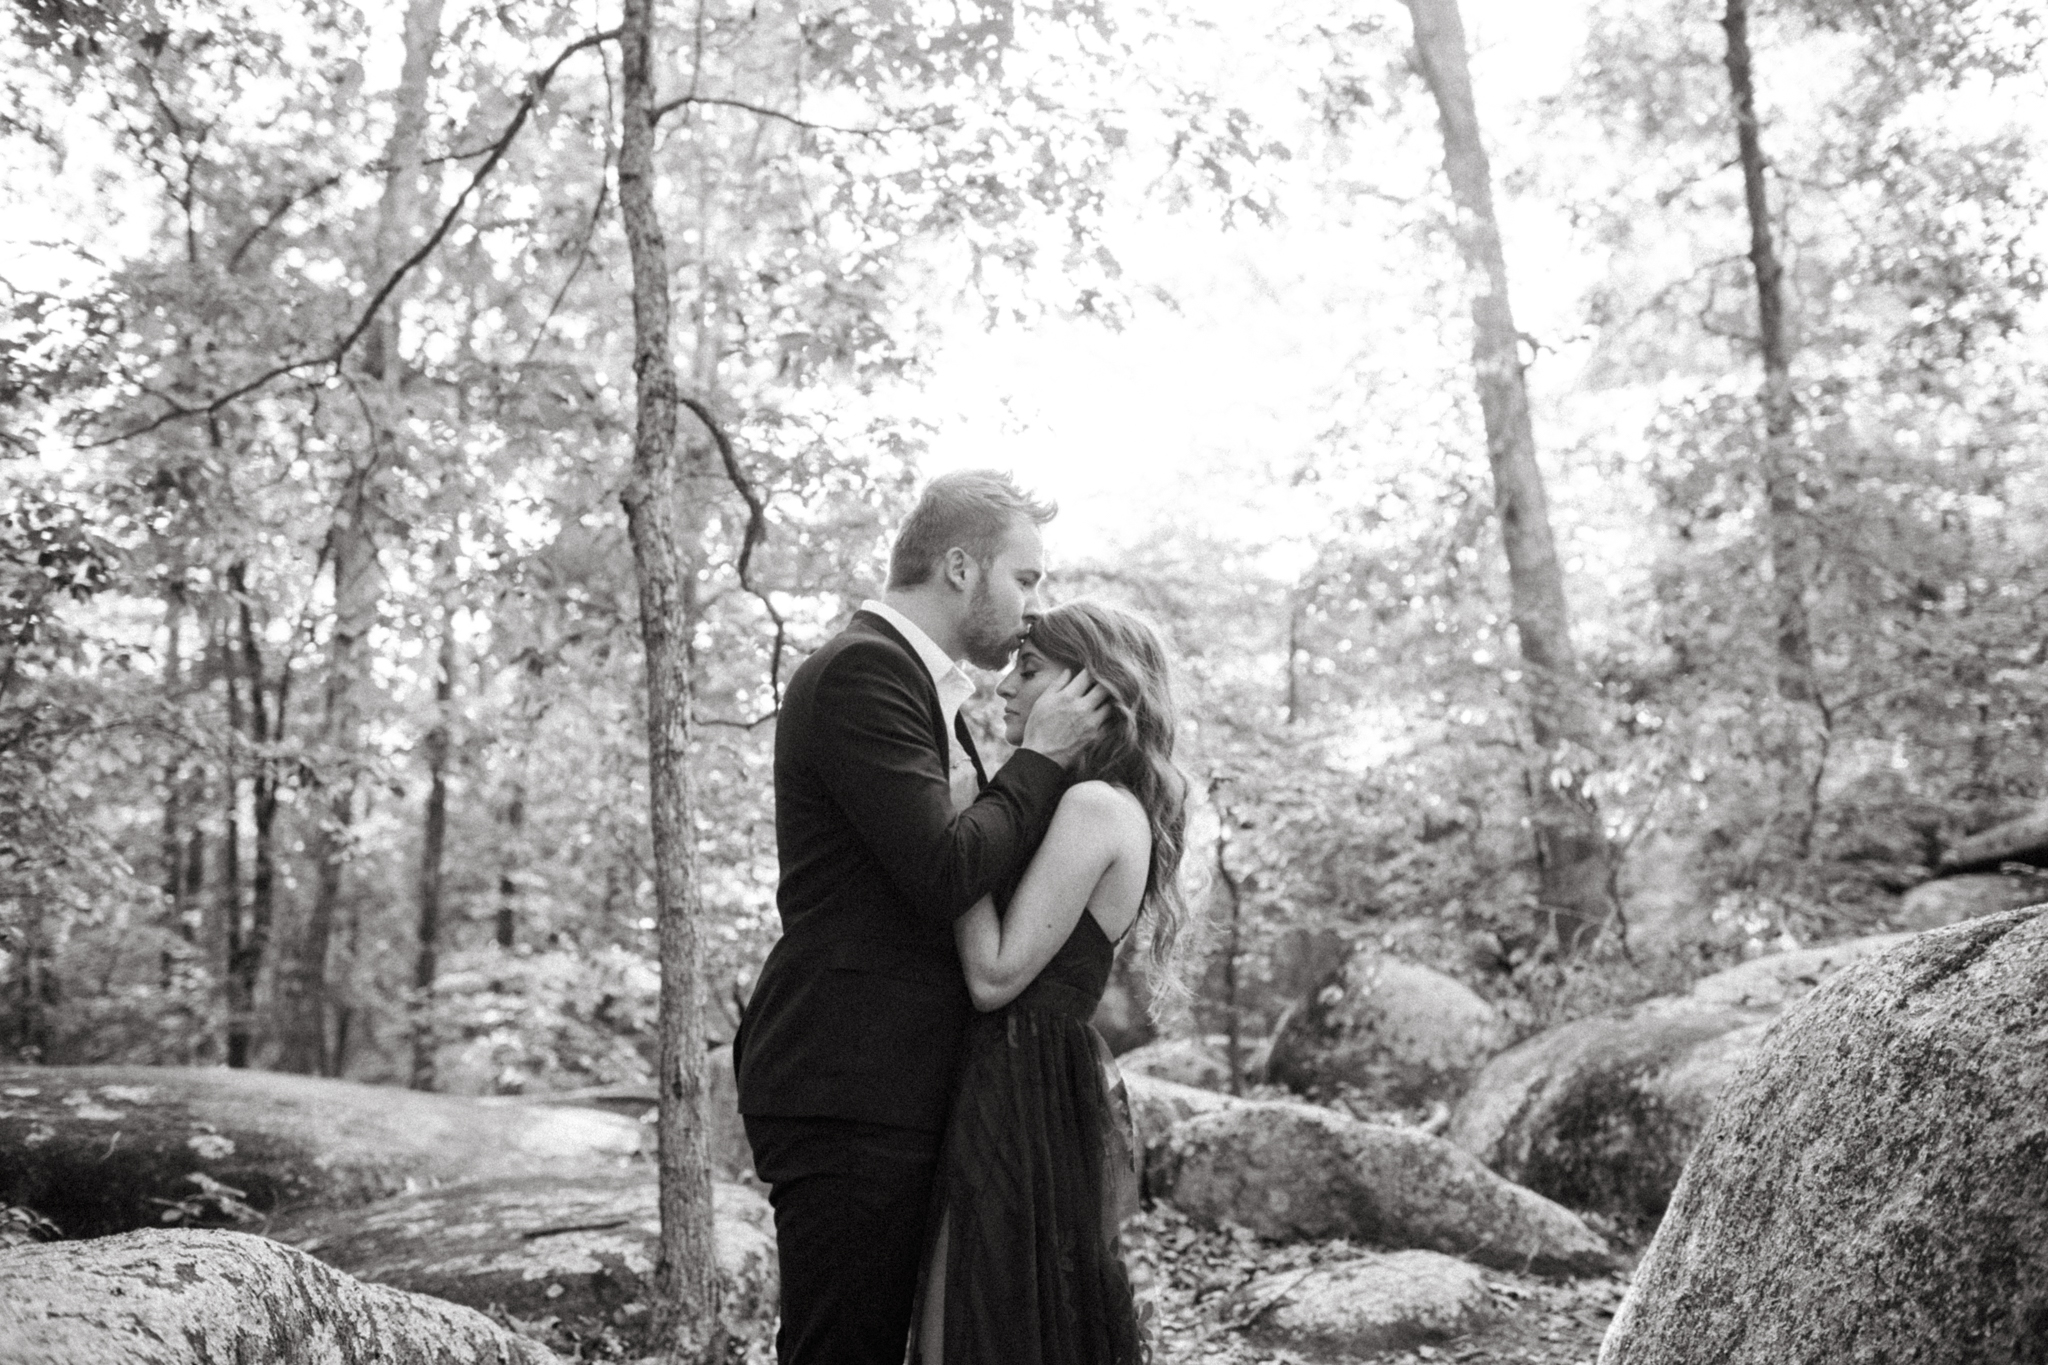 Zach and Rosalie - Missouri Wedding Photographer - Elephant rocks state park anniversary session -5095.jpg